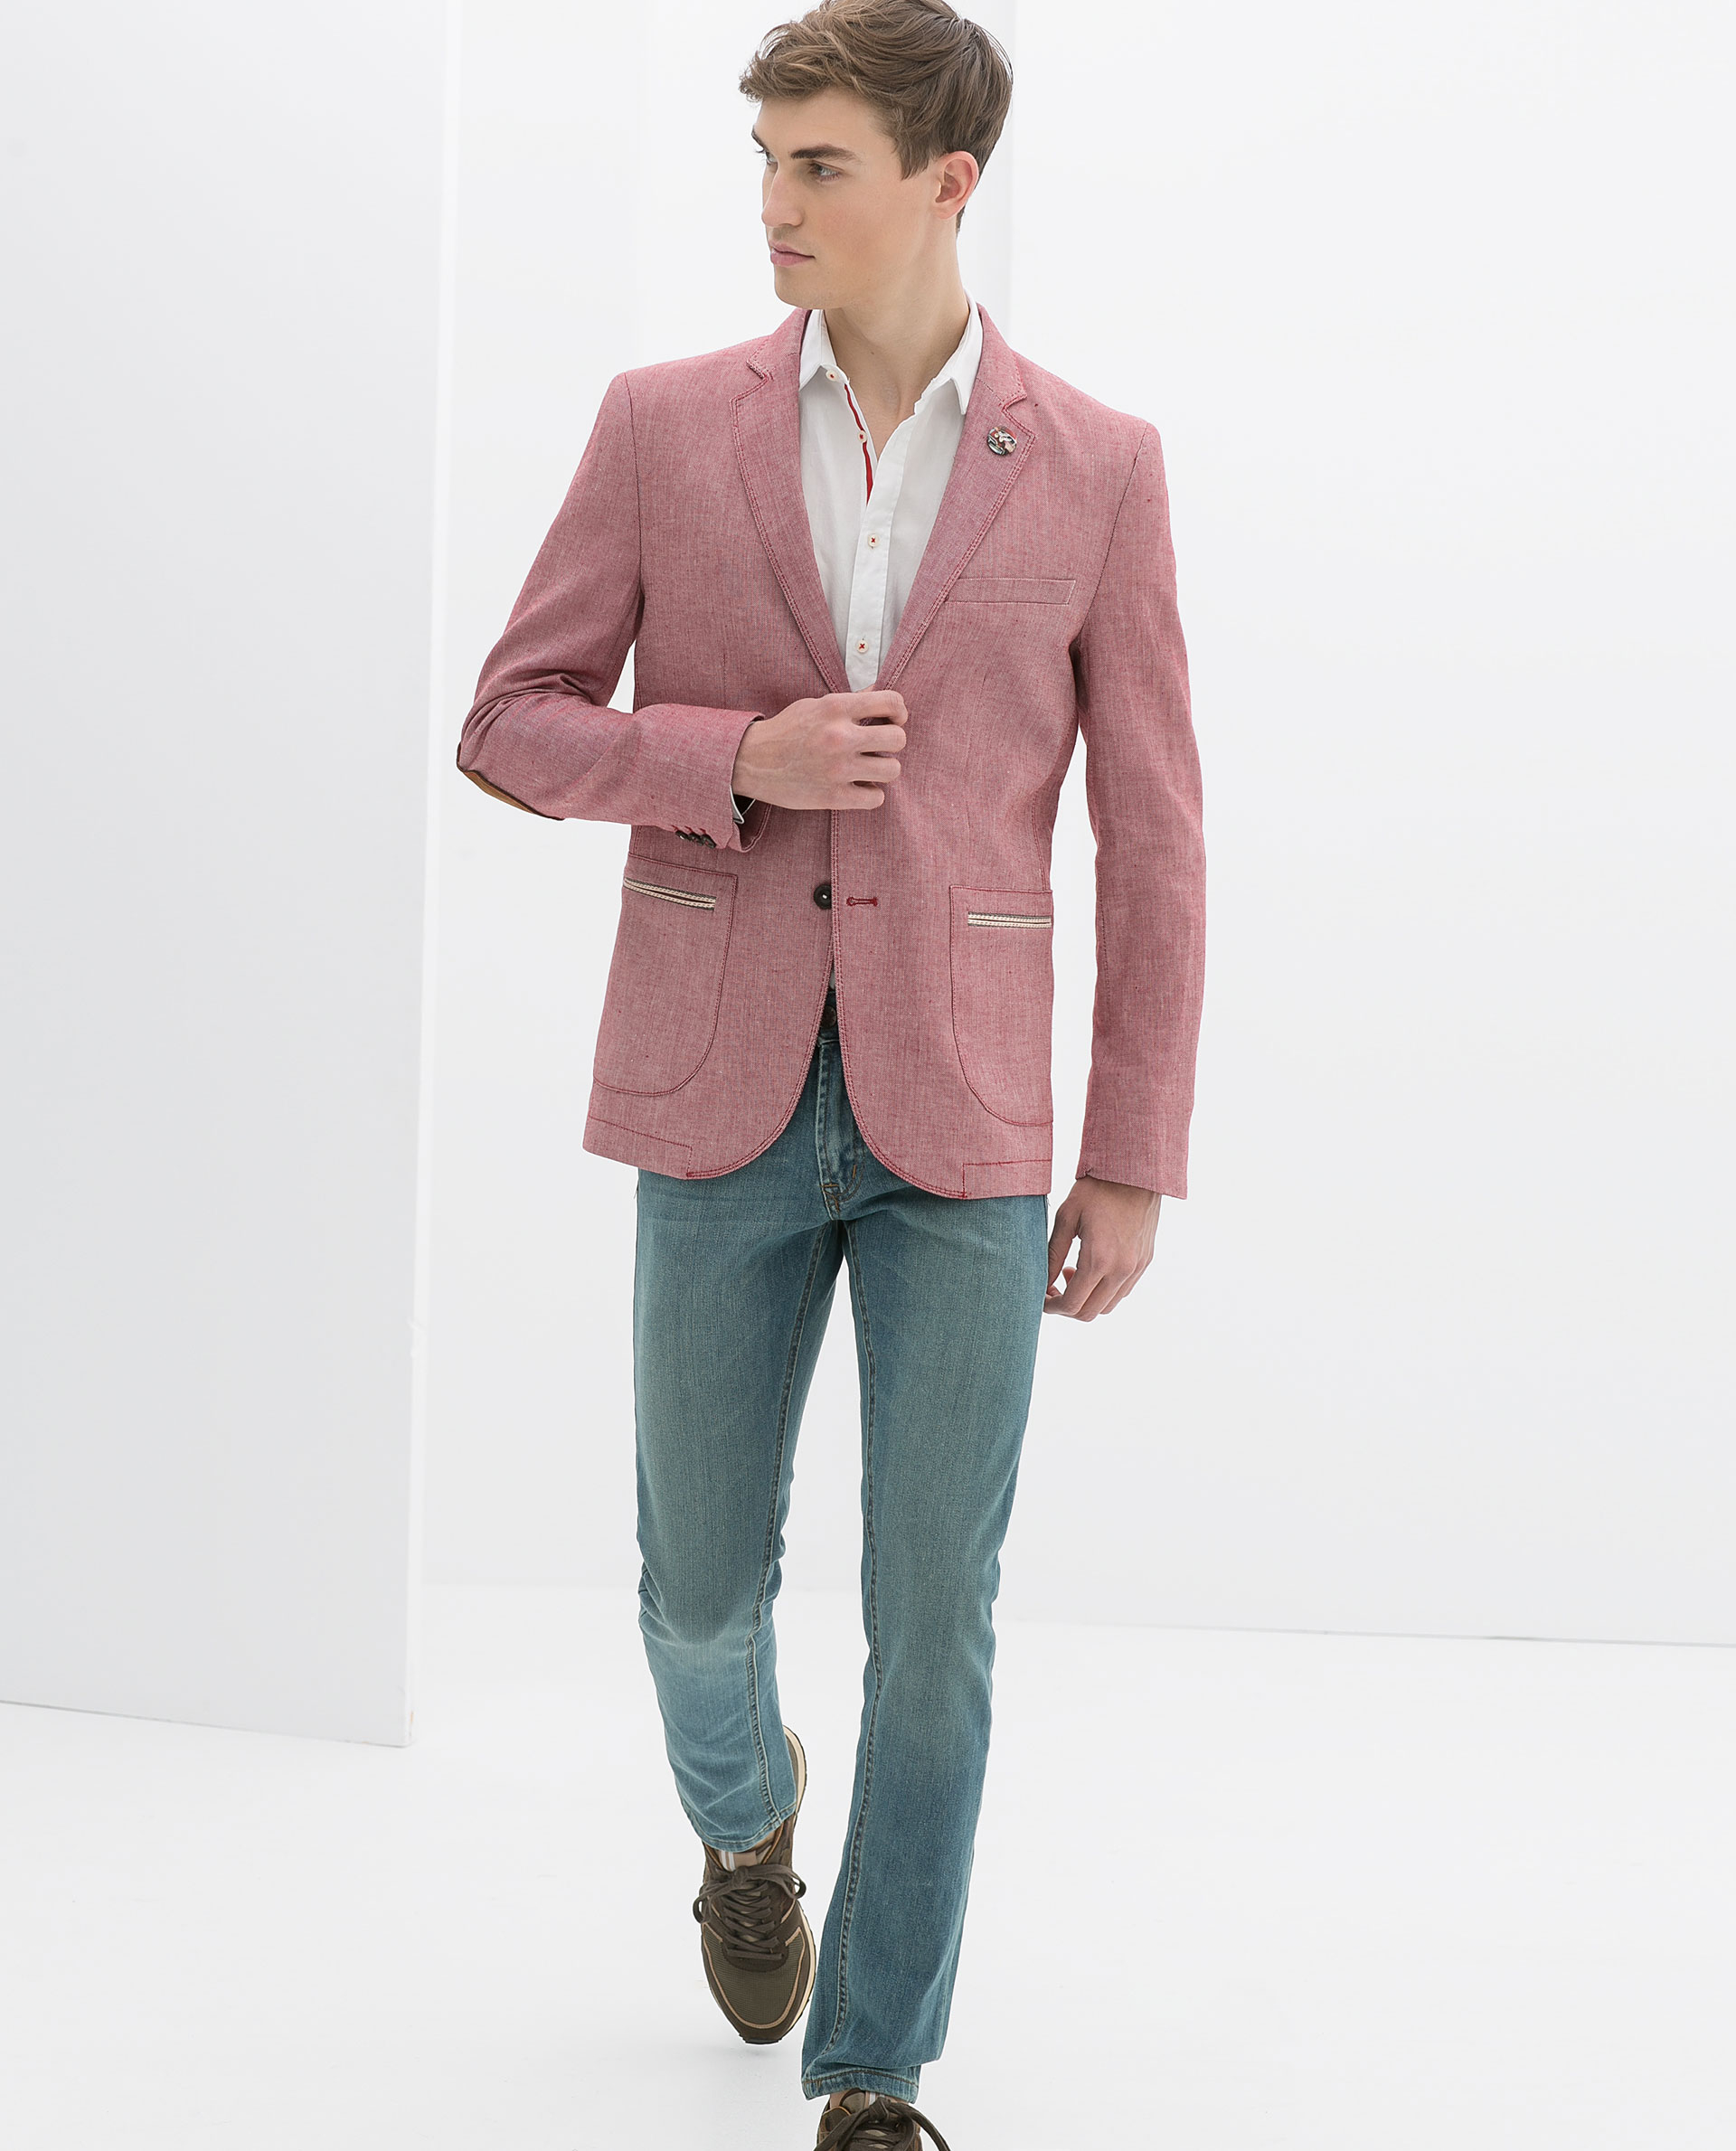 Cheap Red Blazer